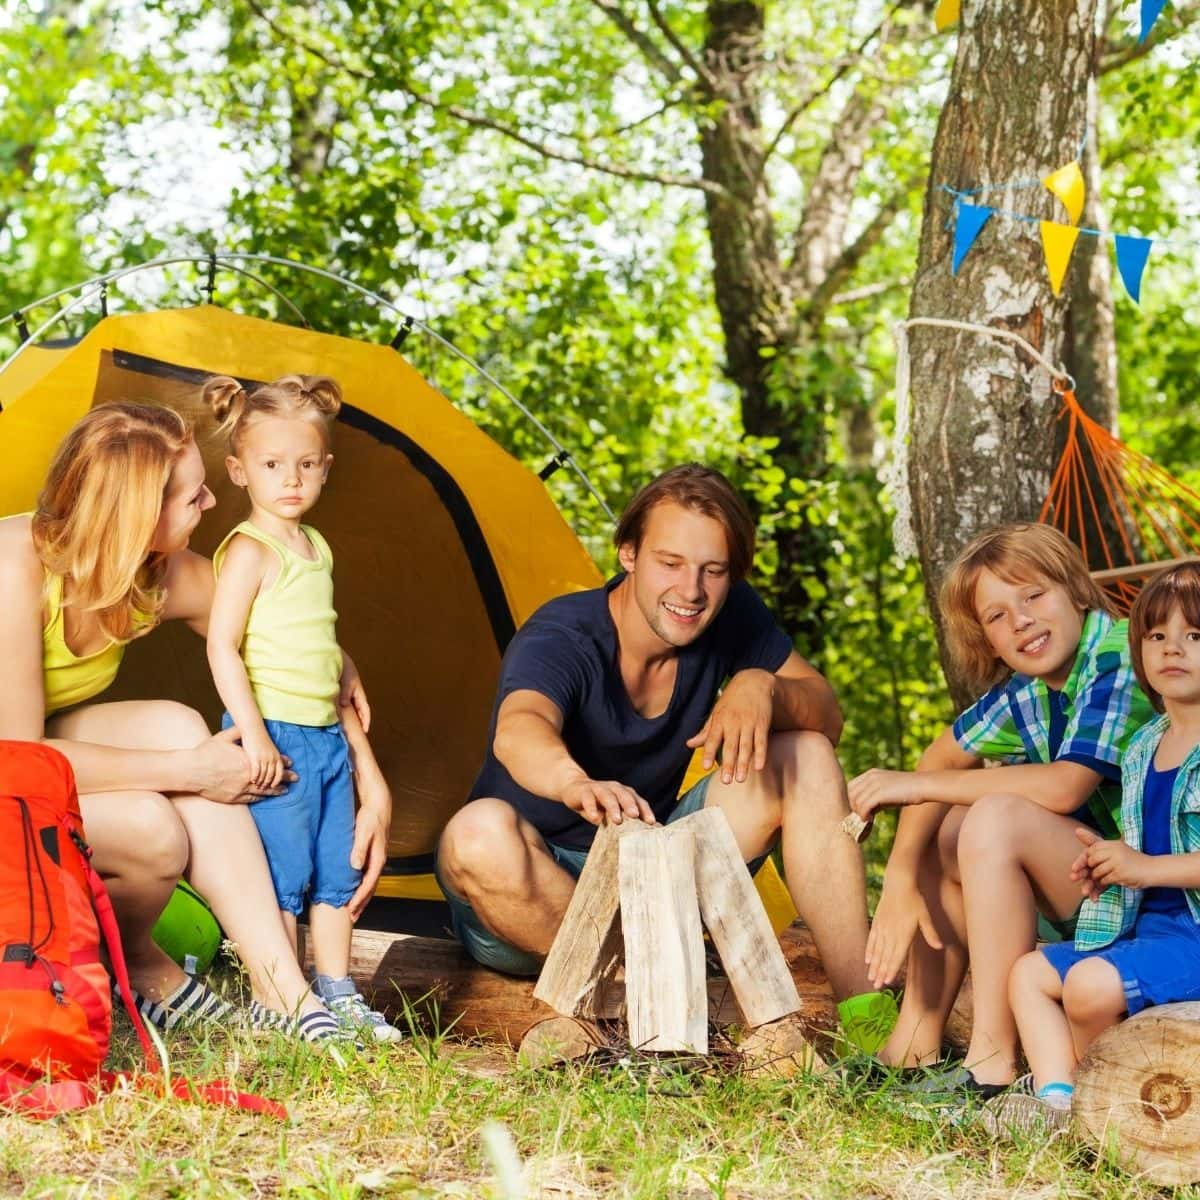 A family of 5 sitting on the ground next to a tent enjoying camping